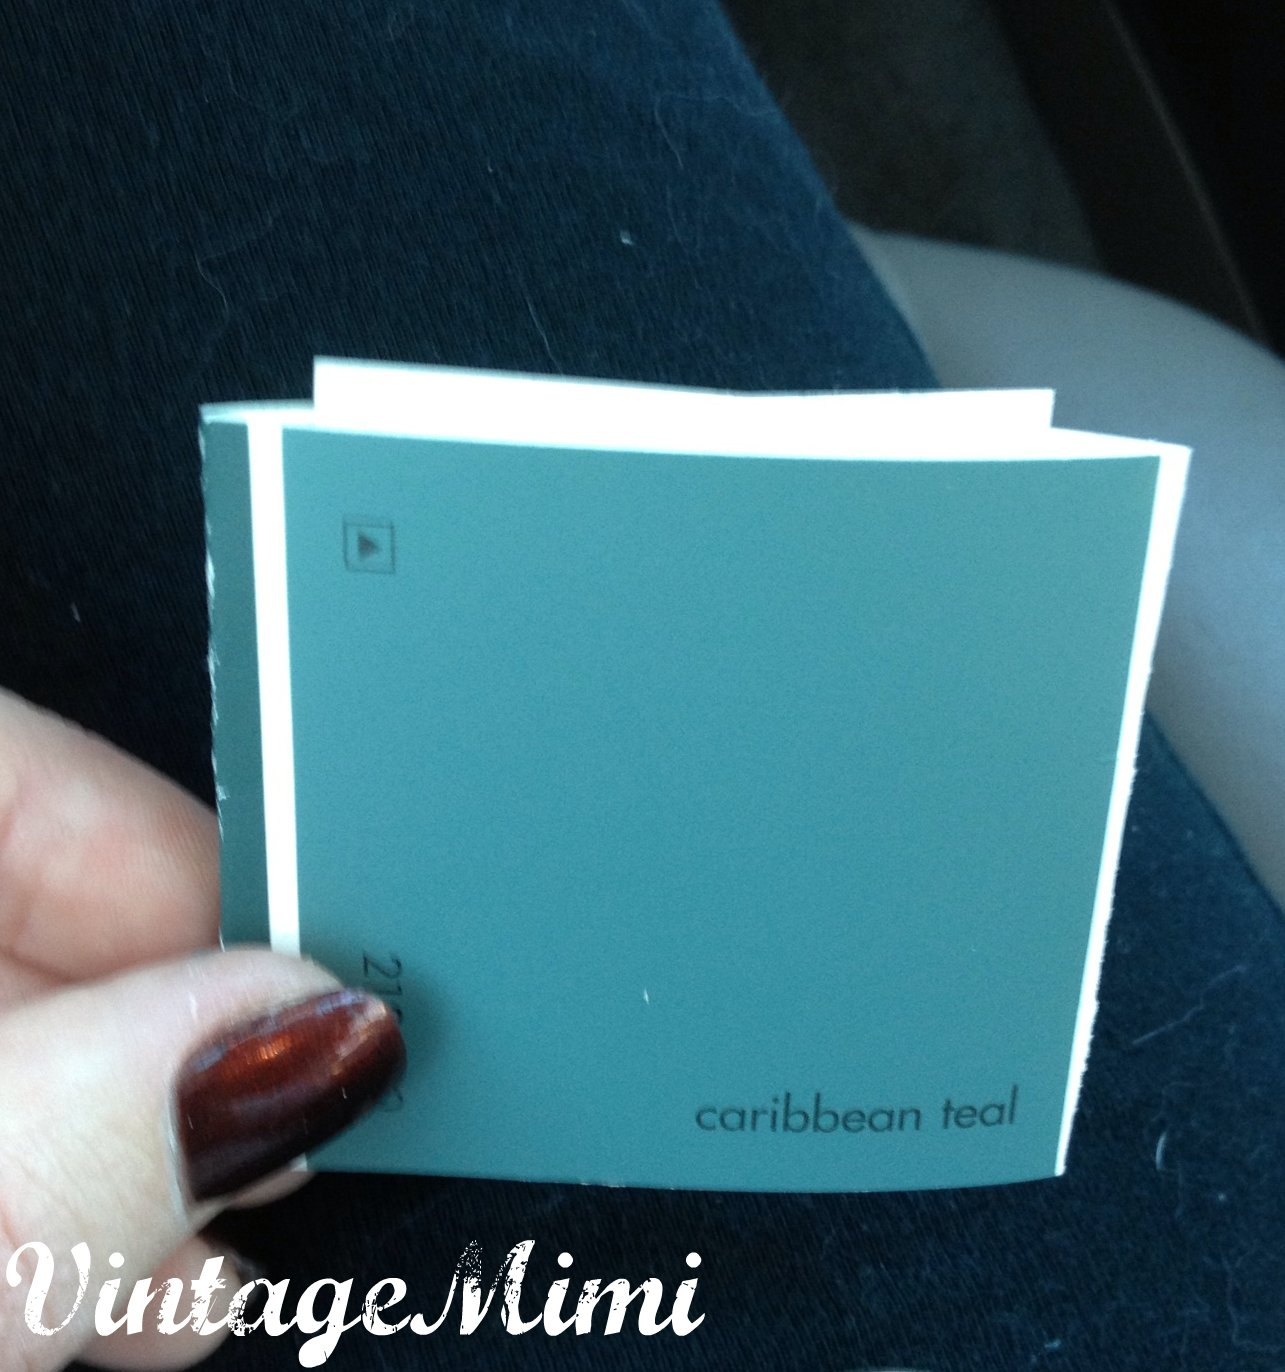 I Sed And She Painted Ceilings Here Is The Paint Color Chose Benjamin Moore Caribbean Teal Had Them Lighten By 25